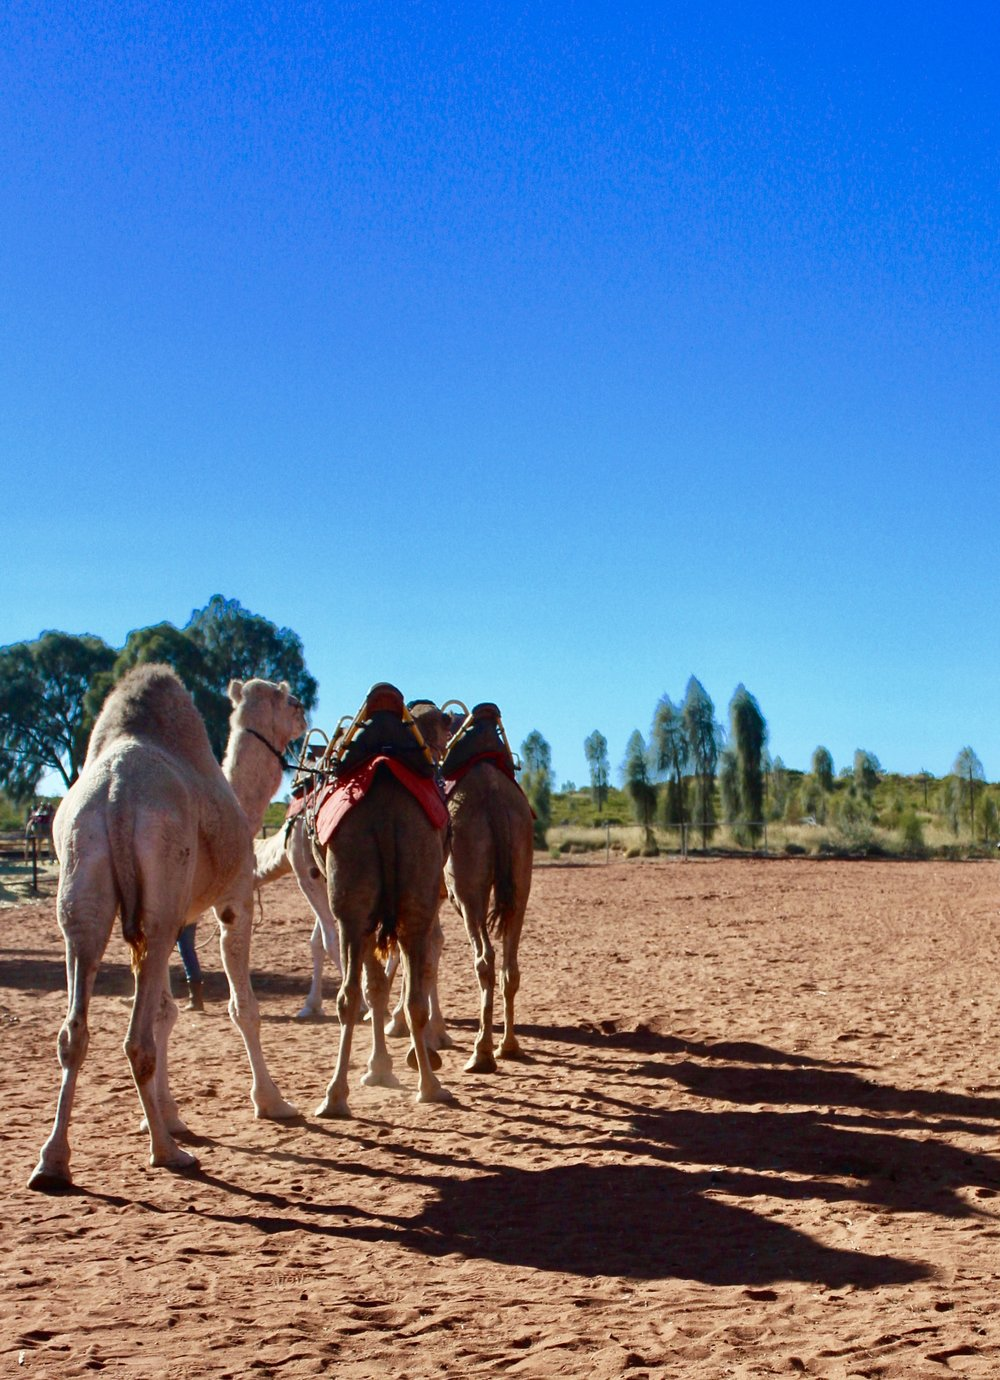 Camels at the nearby farm